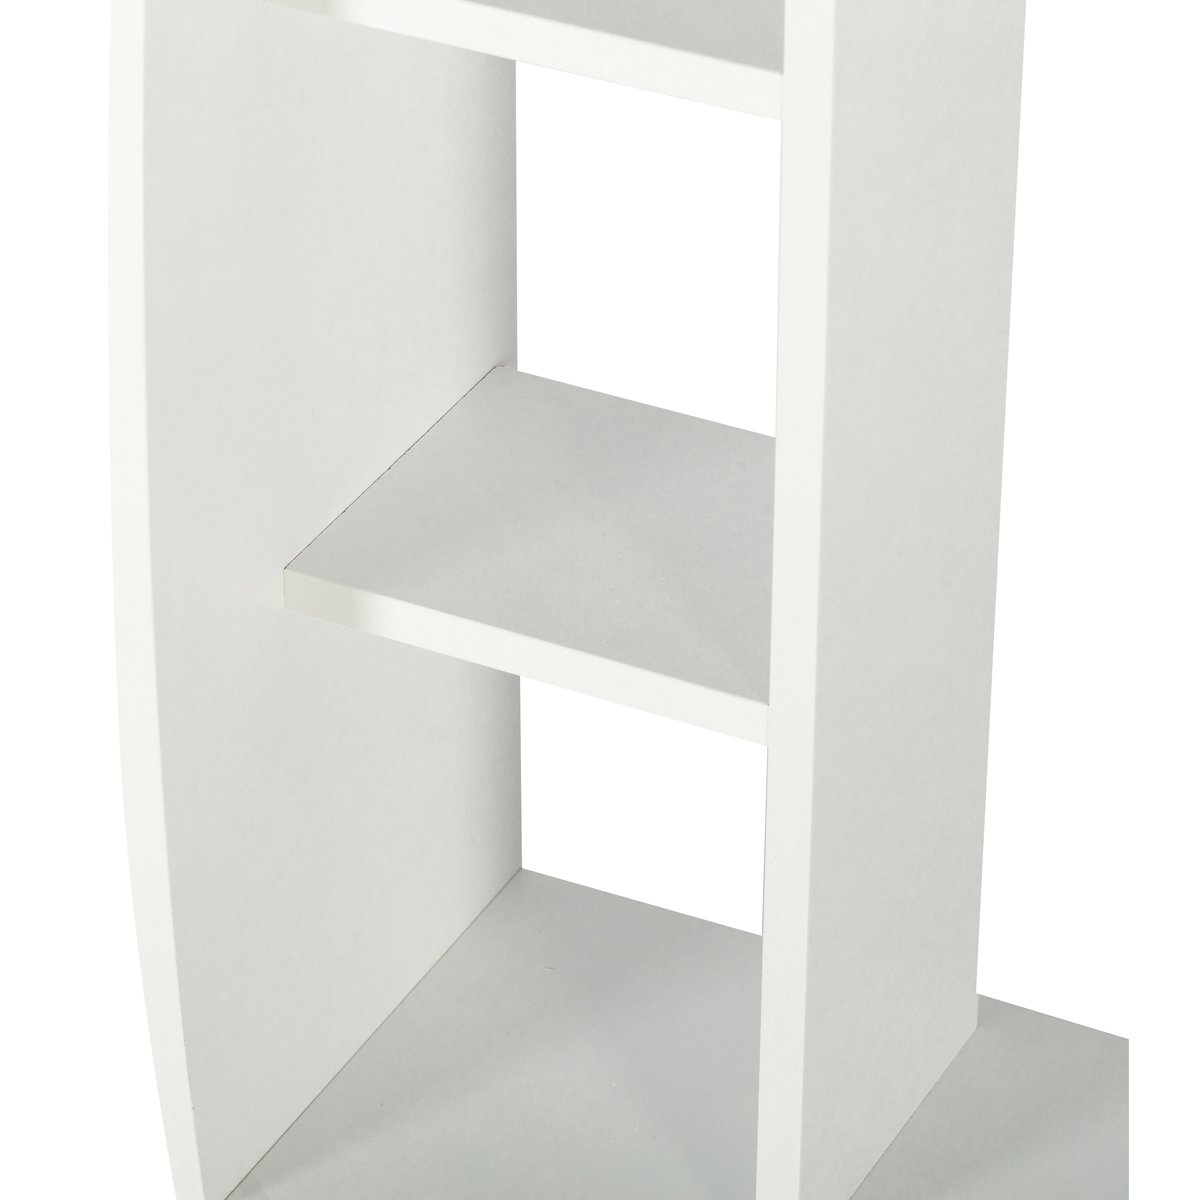 Edencomer FSC Certified Wall Mounted Floating Desk Home Office Computer Desk with Storage Shelves, White